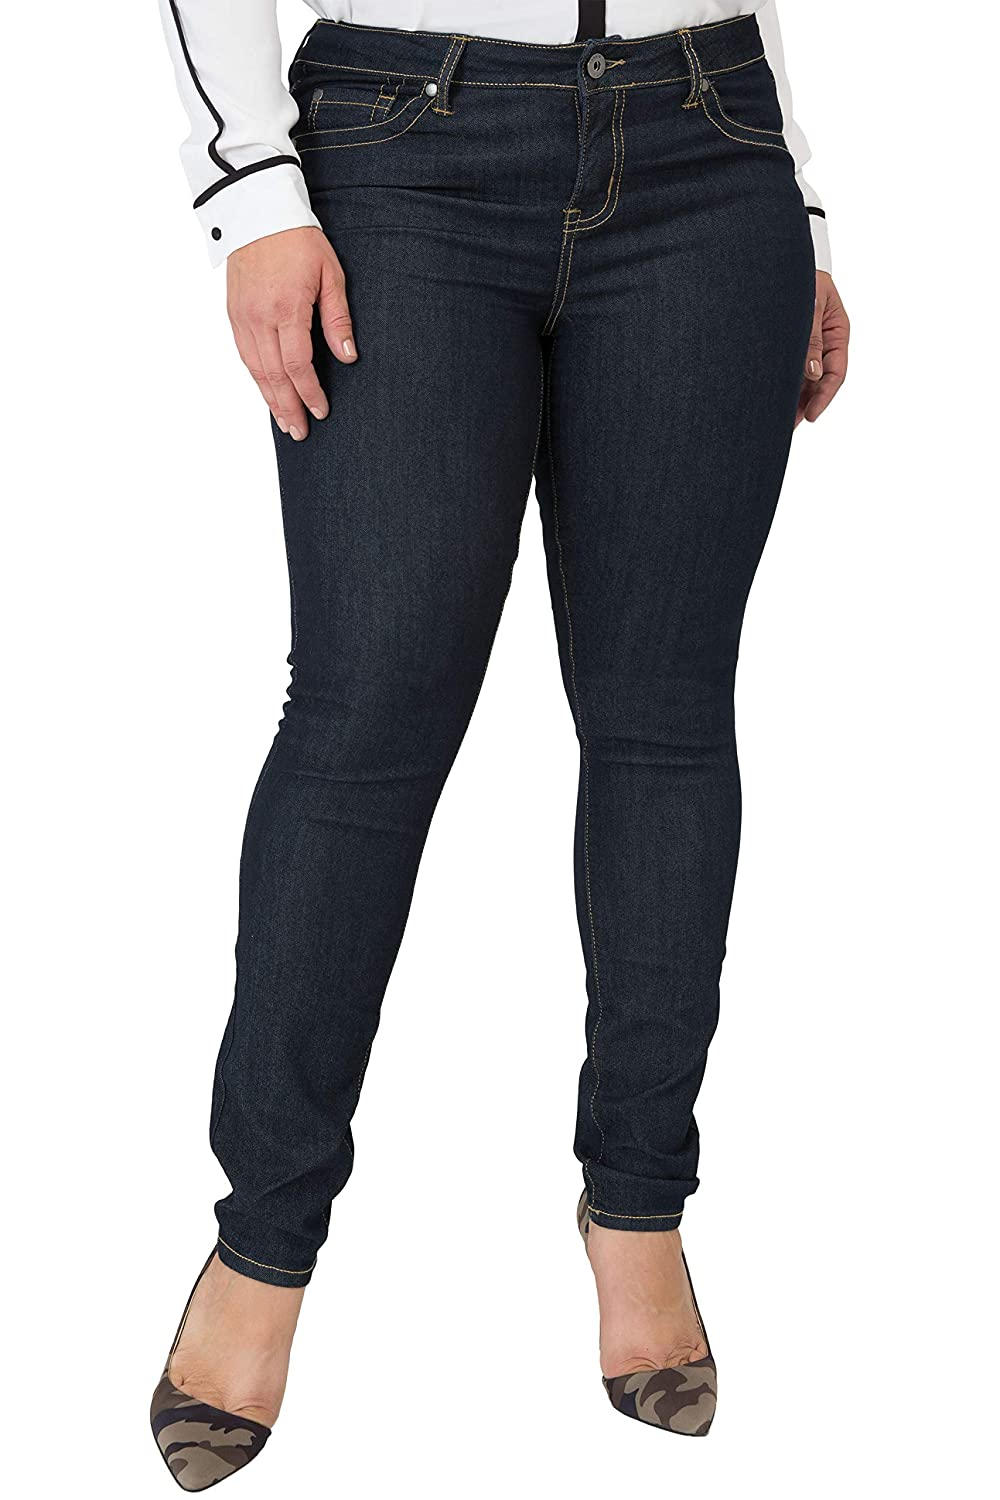 633e68674490d Miss Halladay Plus Size Women's Midrise Skinny Jeans Indigo Rinse Size 10  to 30 at Amazon Women's Jeans store